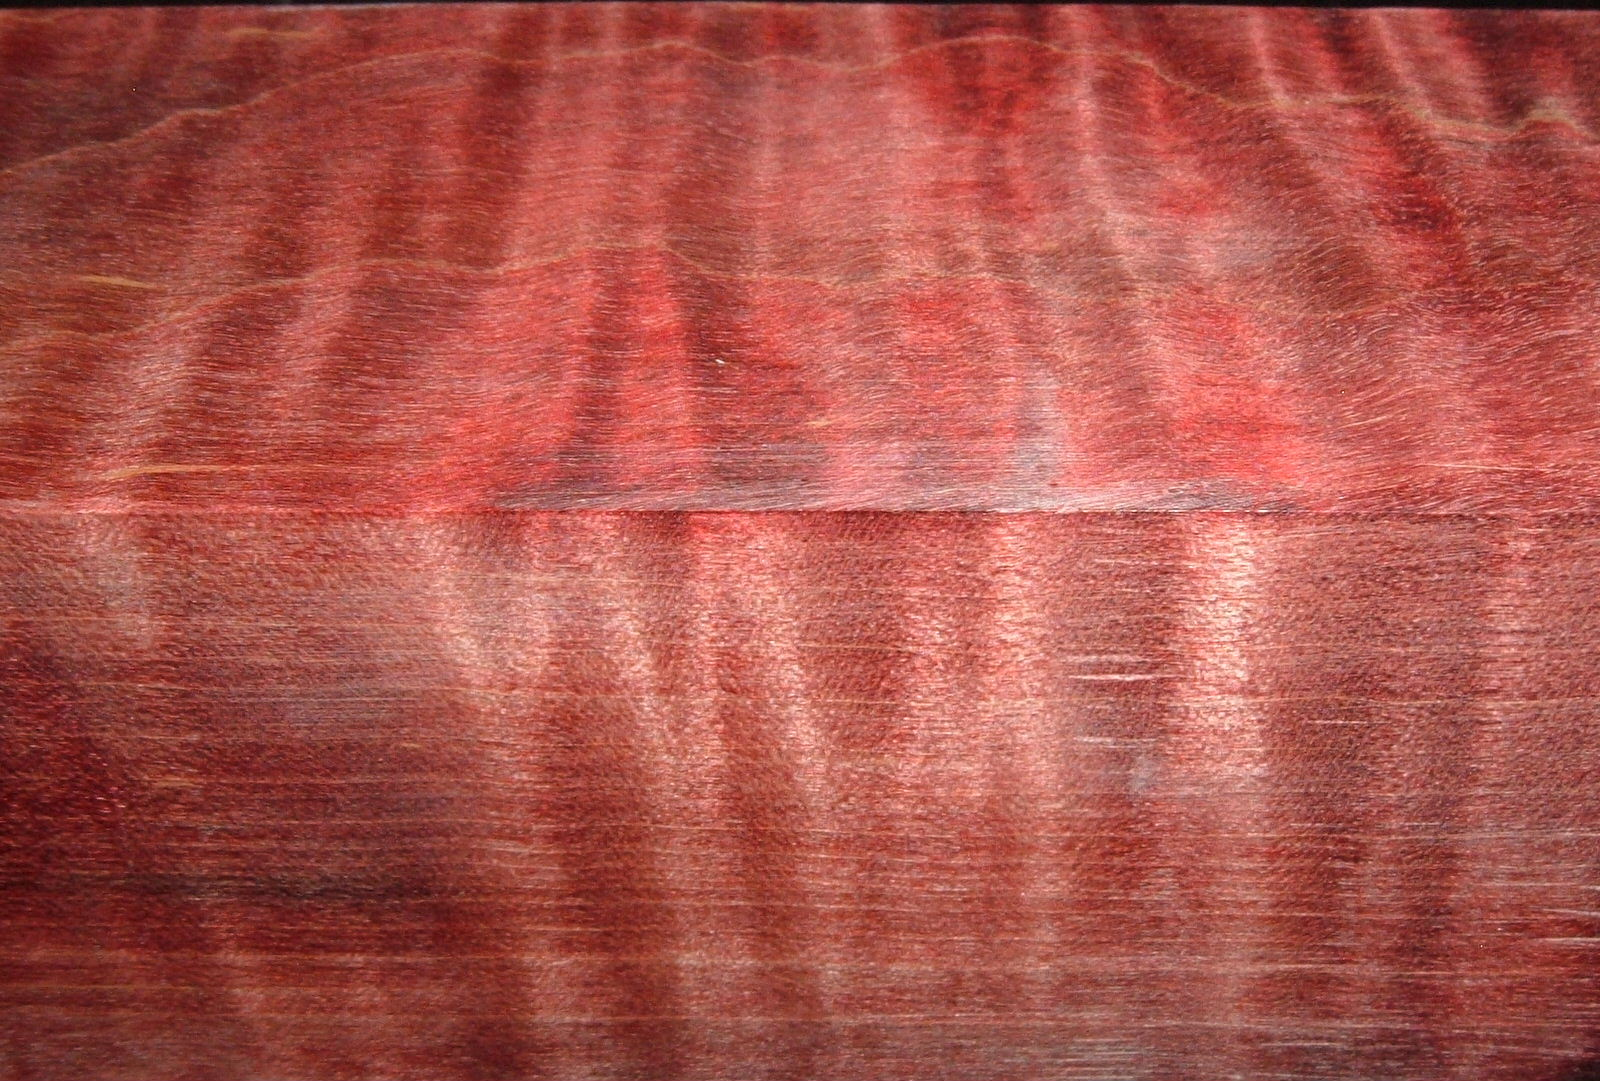 Z396, Curly Tiger Maple Dyed Stabilized, wood turning block, Red, 1-3/4x1-3/4x6-1/2